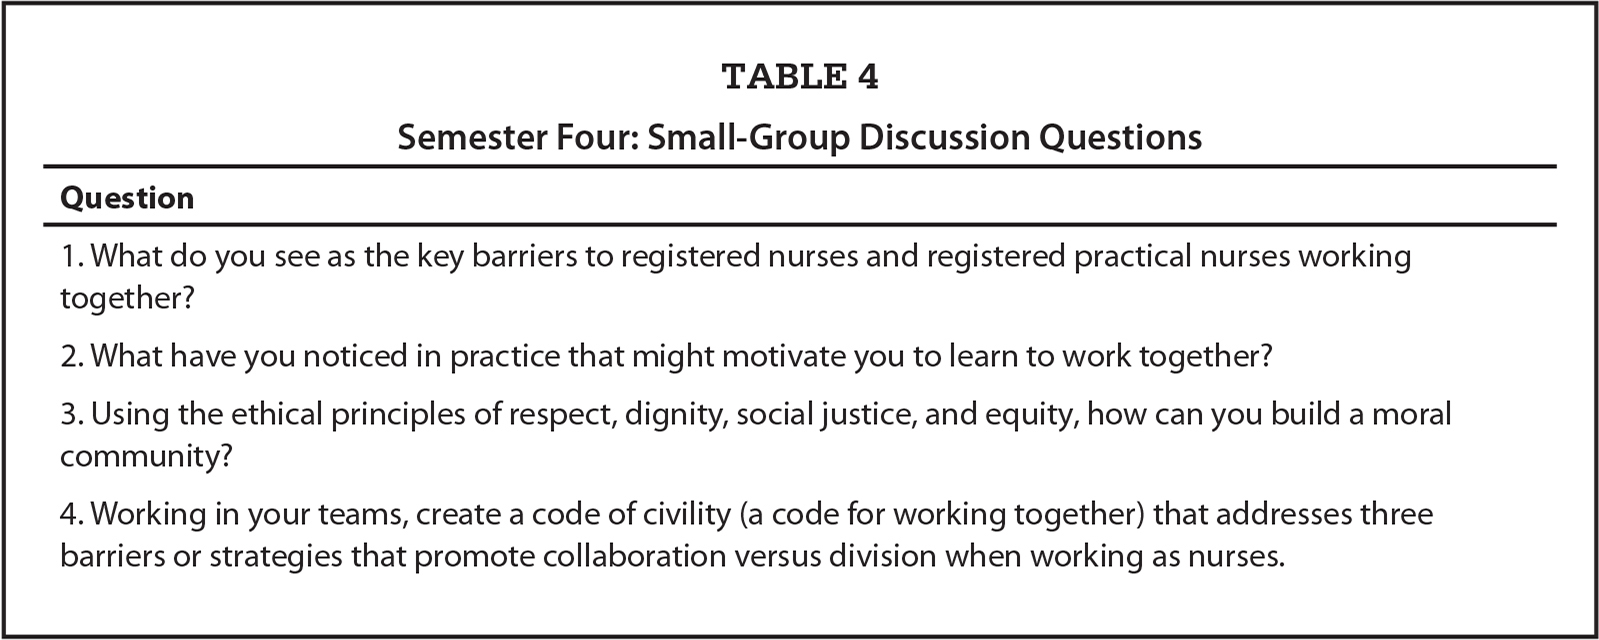 Semester Four: Small-Group Discussion Questions